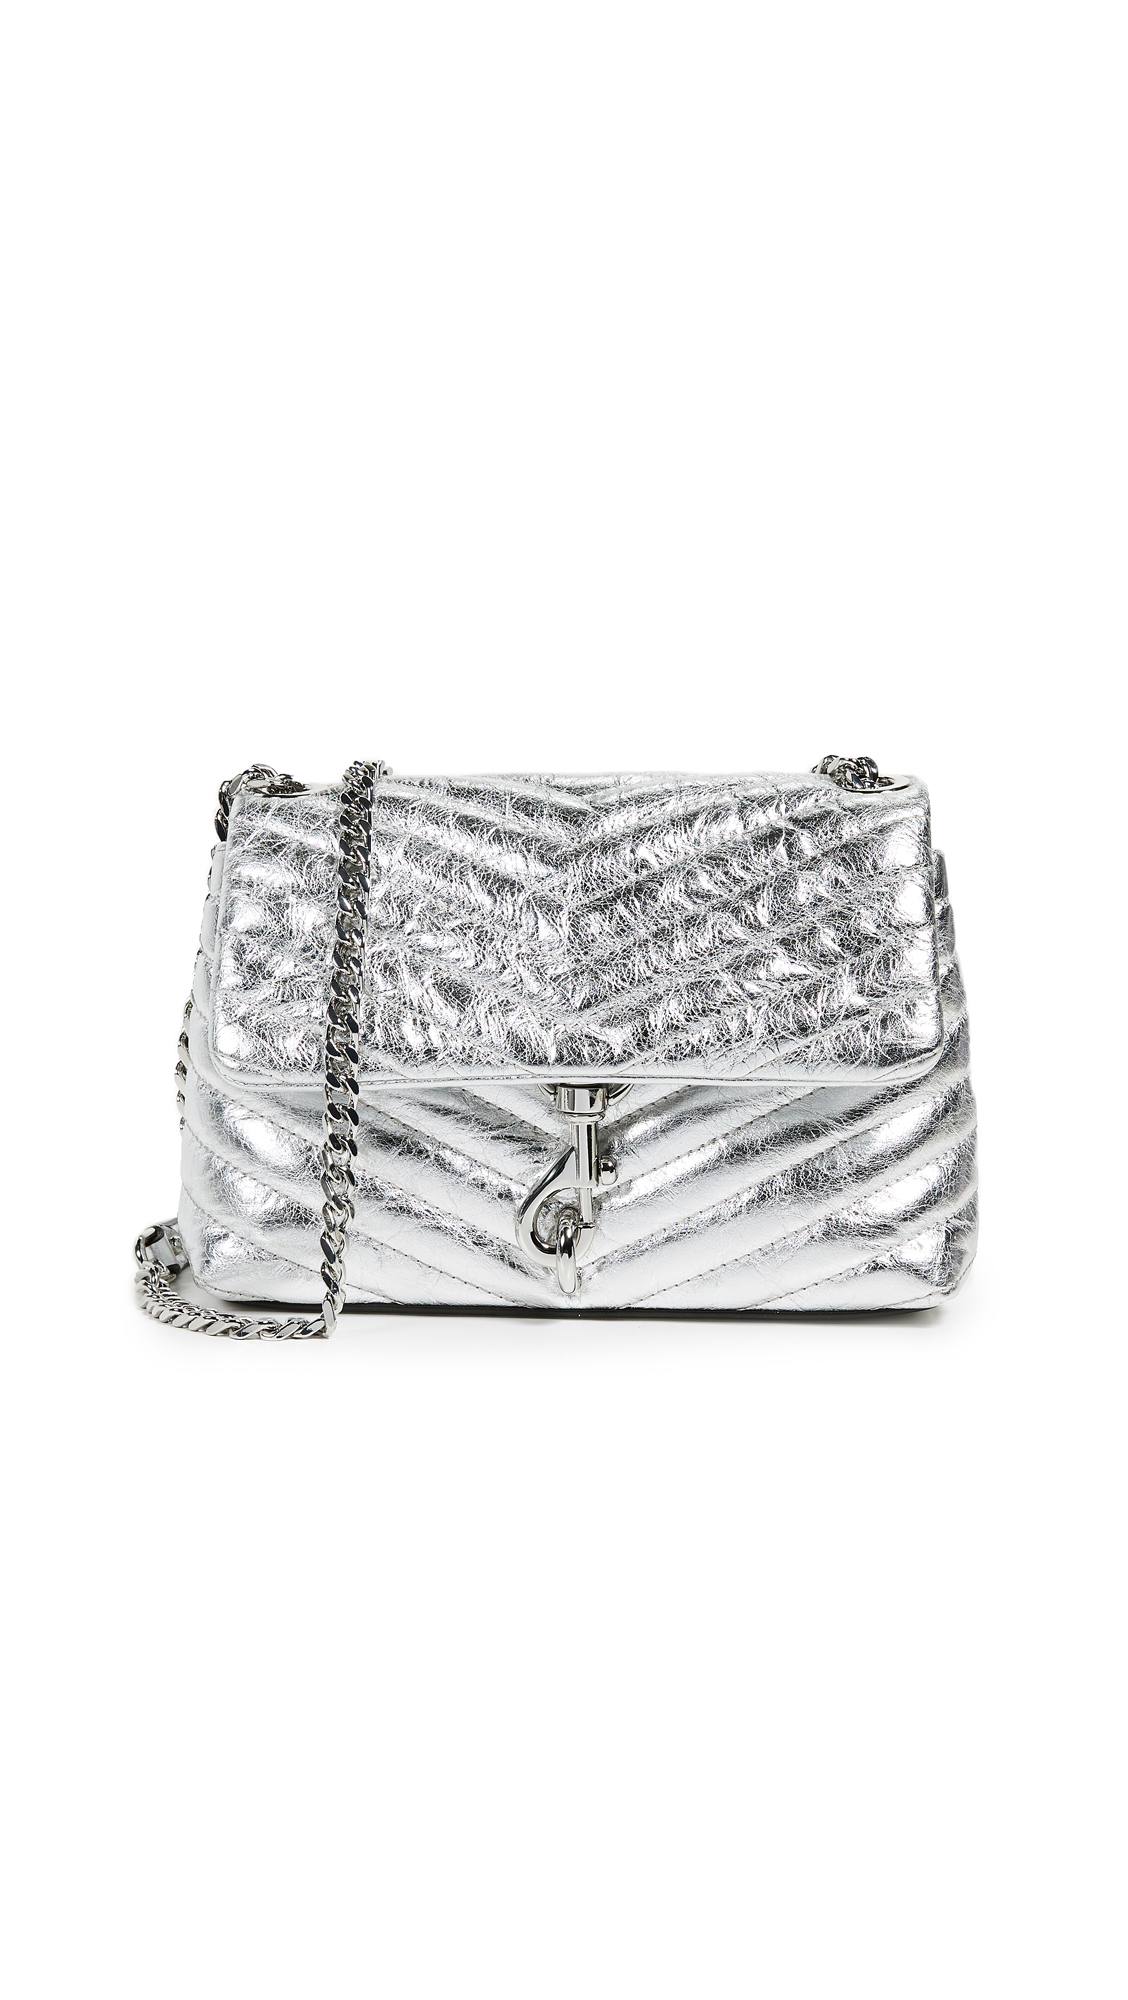 Rebecca Minkoff Edie Quilted Metallic Crossbody Bag